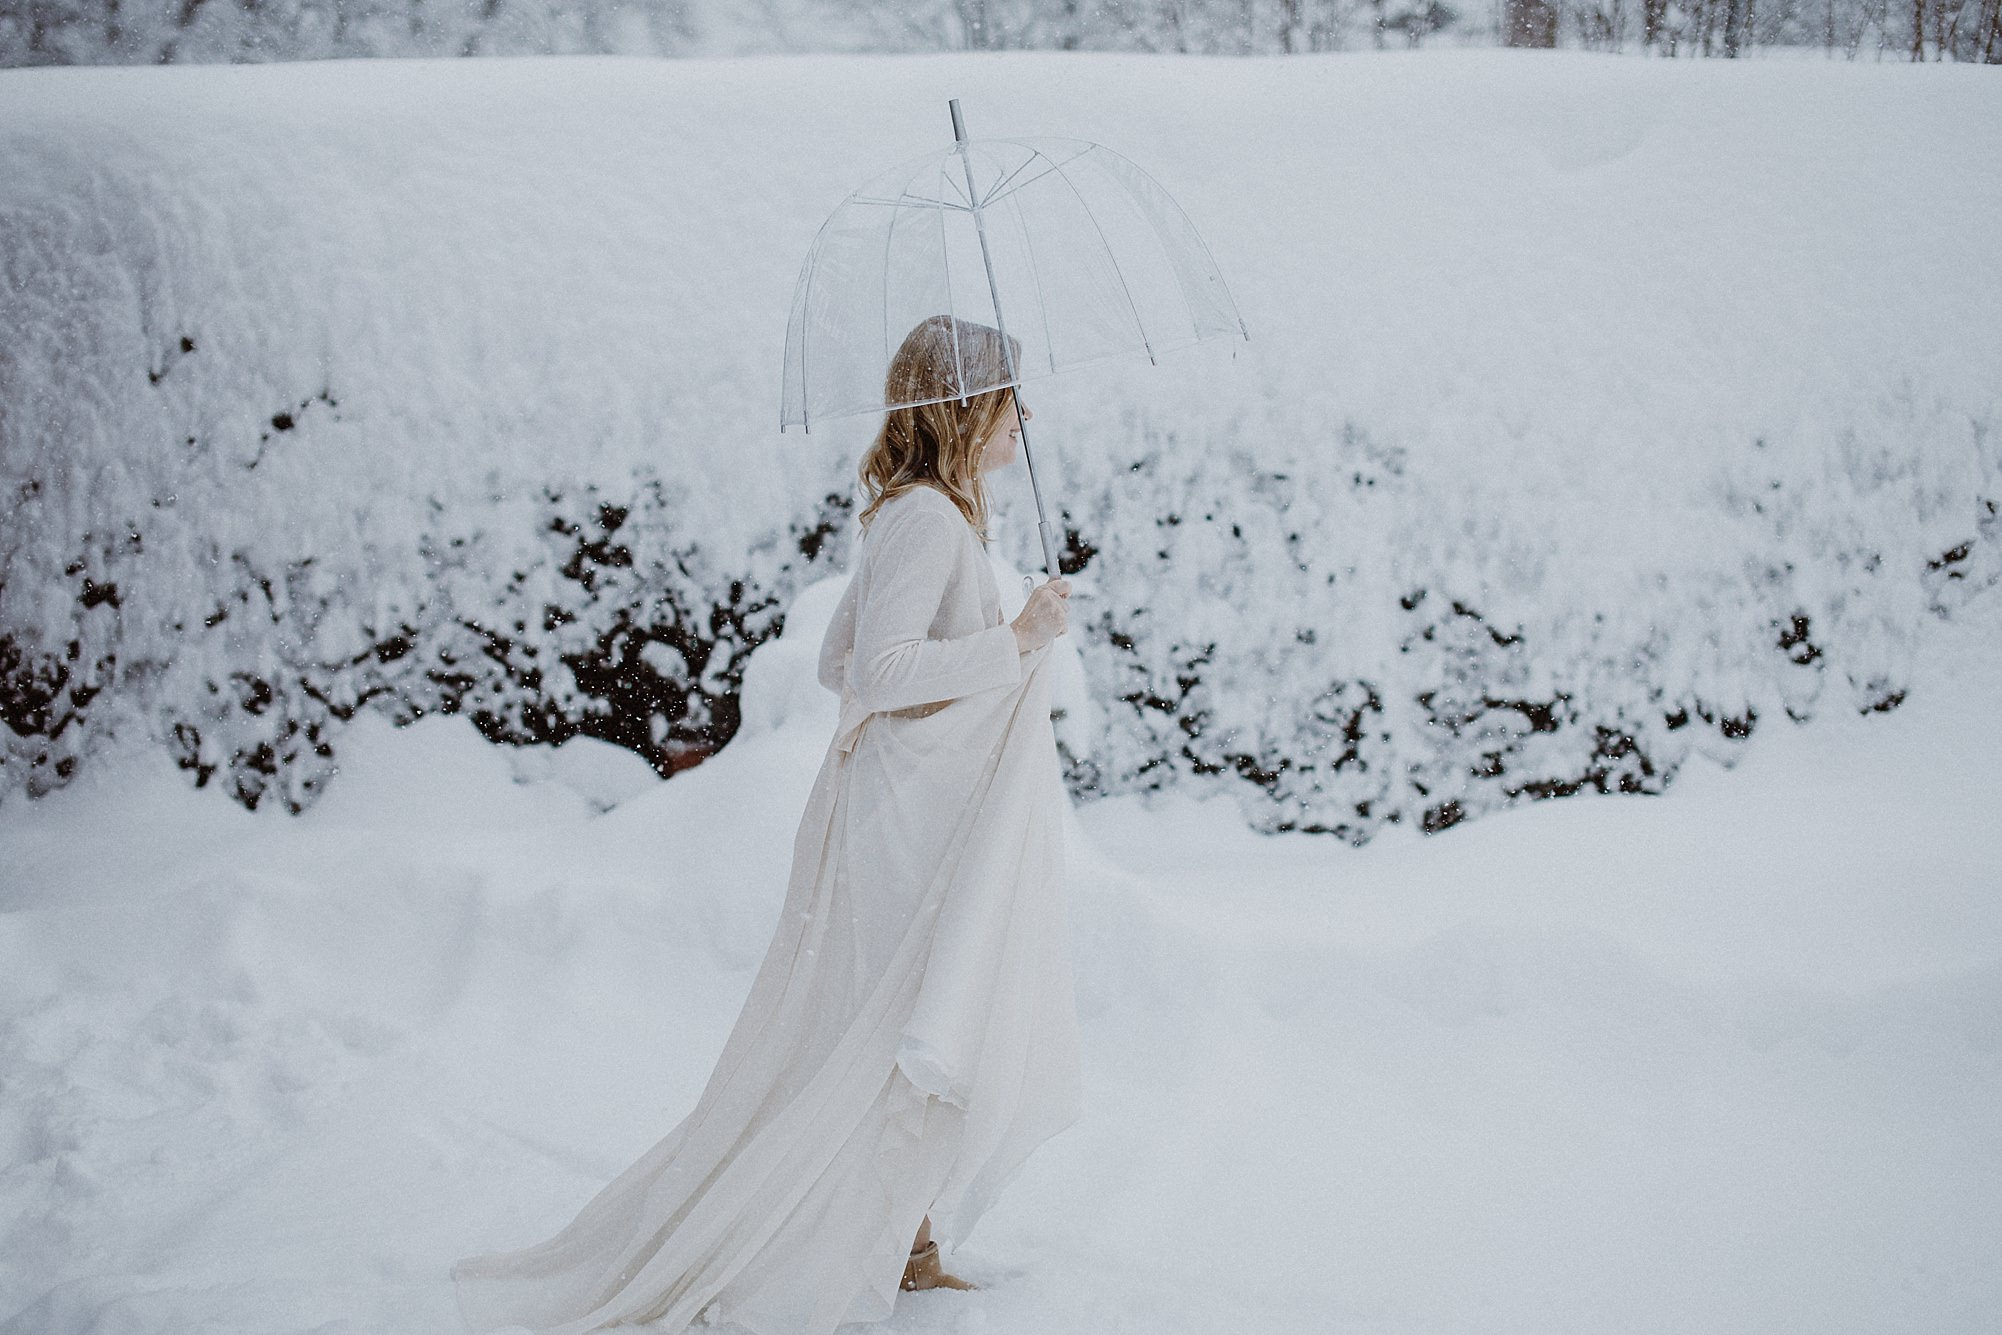 Cozy winter wedding, Winterhochzeit, Oberstdorf, Allgaeu, Germany